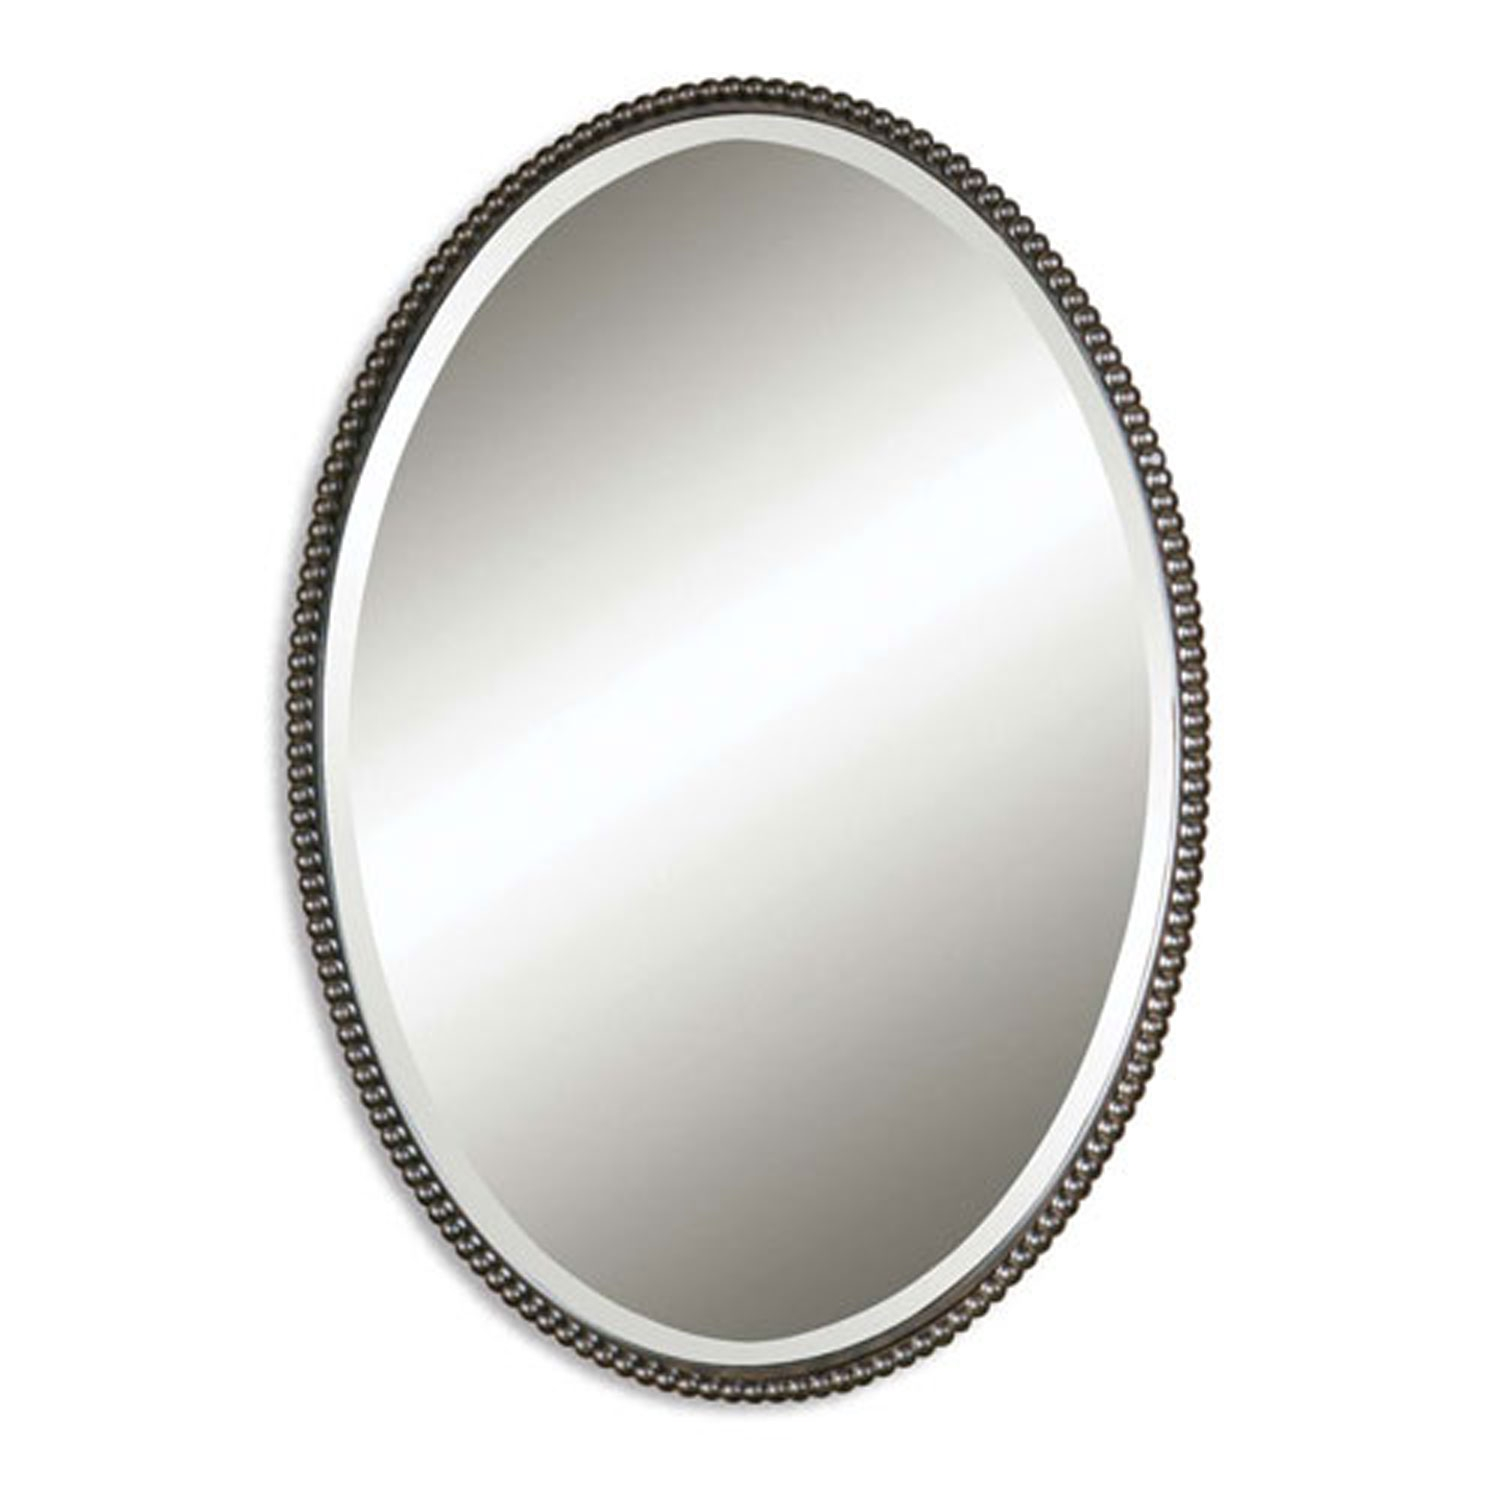 Oval Wall Mirrors 270 Kitchen Bathroom Frameless Vanity Options Pertaining To Long Oval Mirror (View 4 of 15)